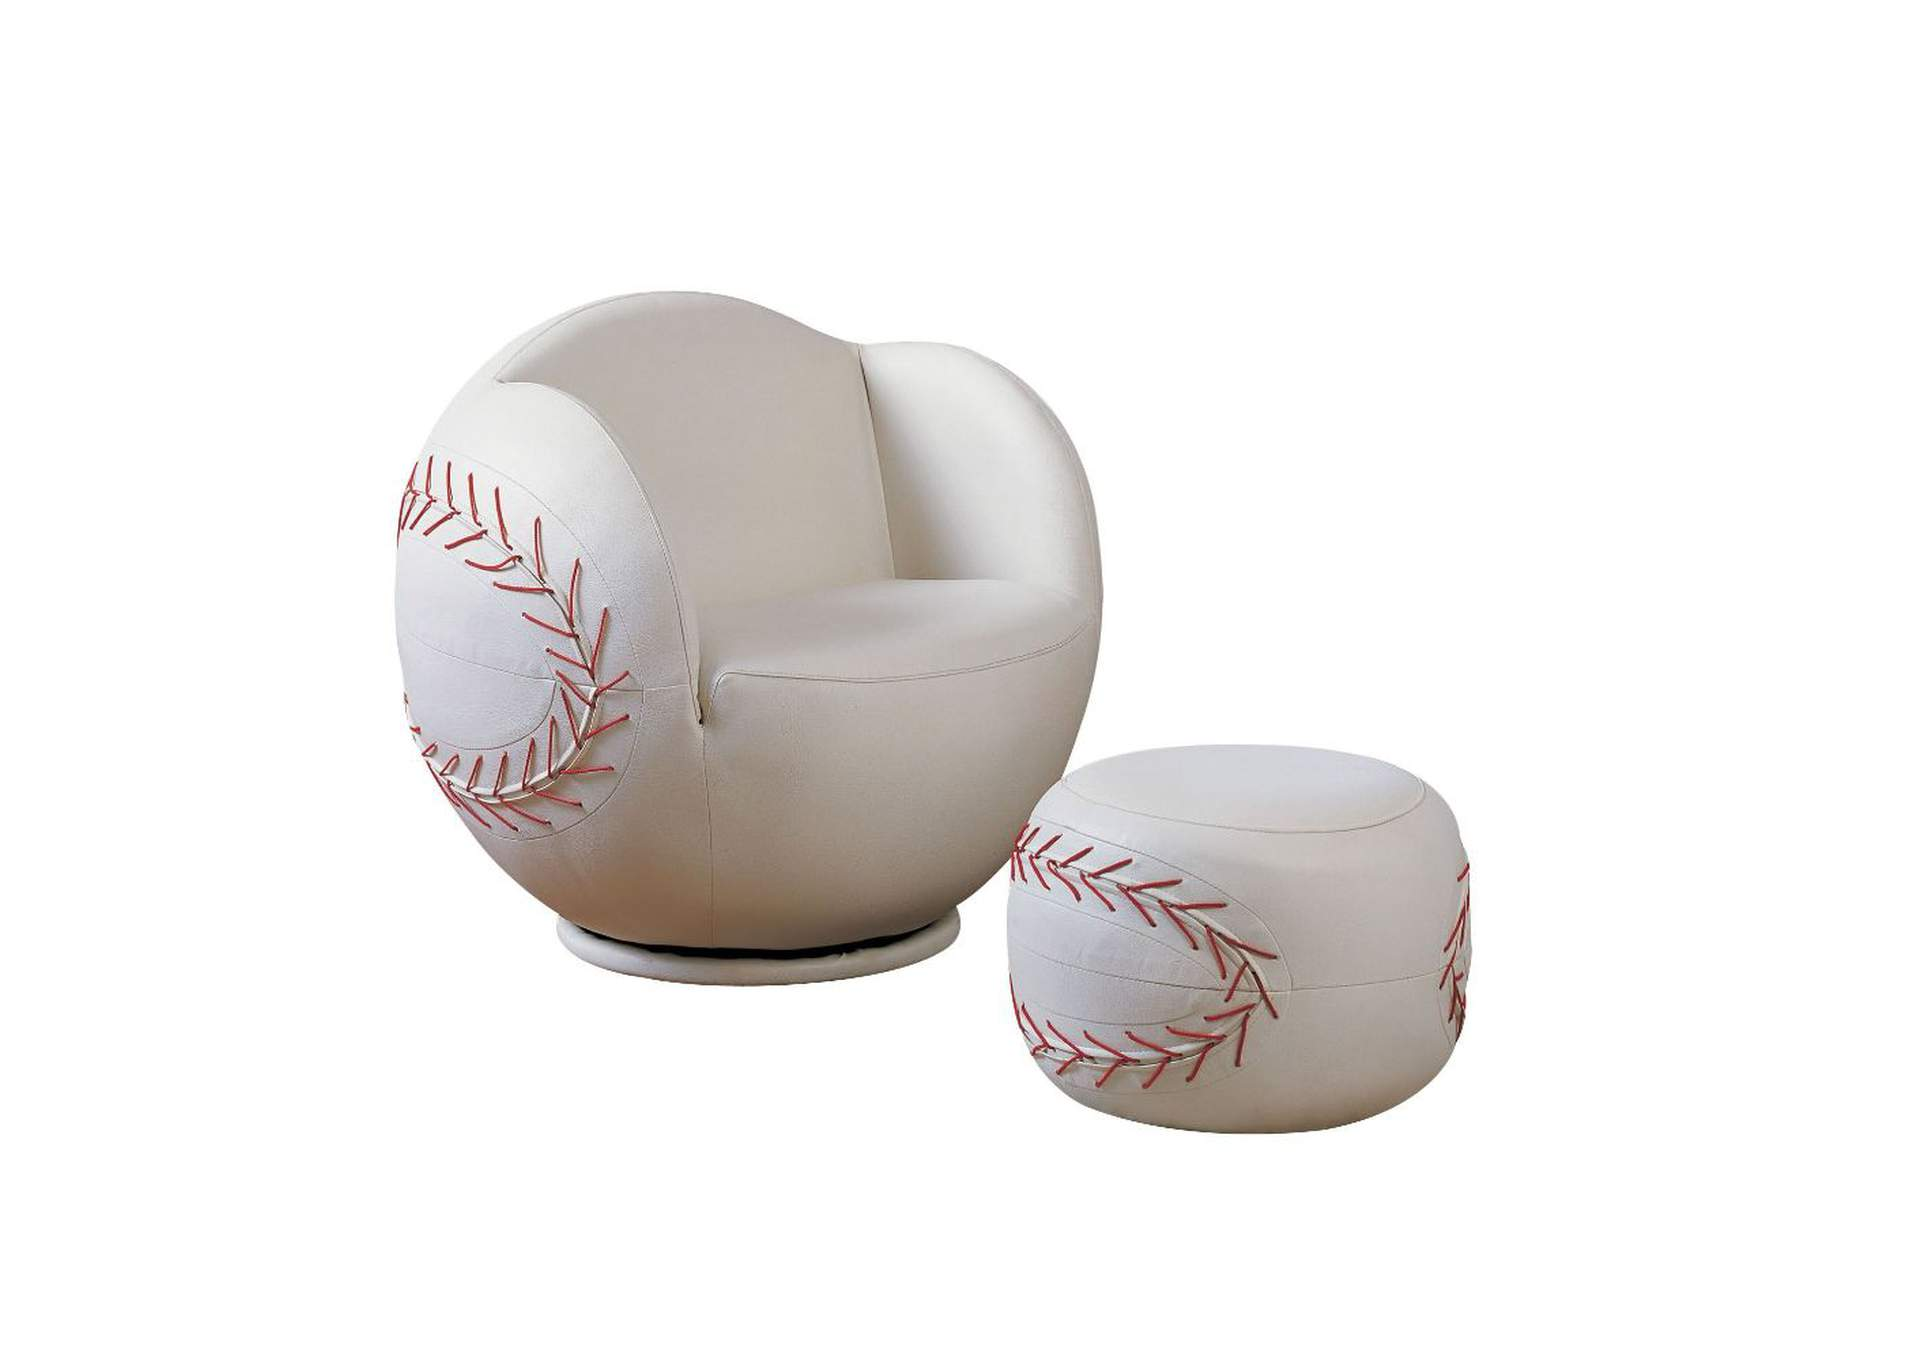 All Star White 2Pc Pk Chair & Ottoman,Acme